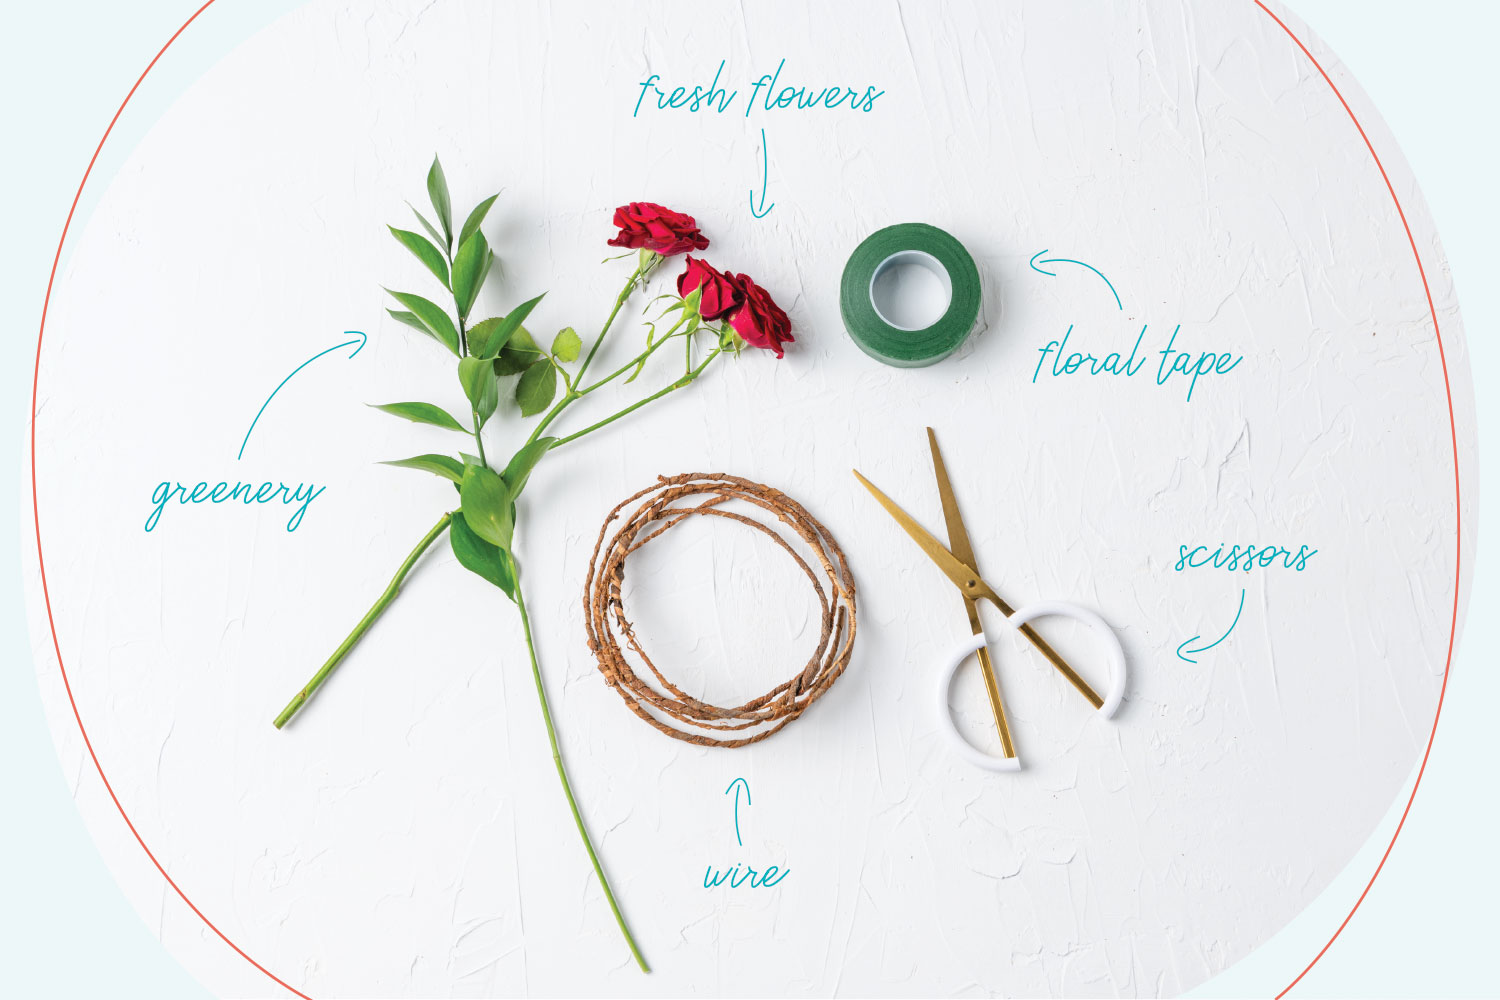 Diy garden blooms flower crown beacon lane blog follow along below for the tutorial diy garden blooms flower crown izmirmasajfo